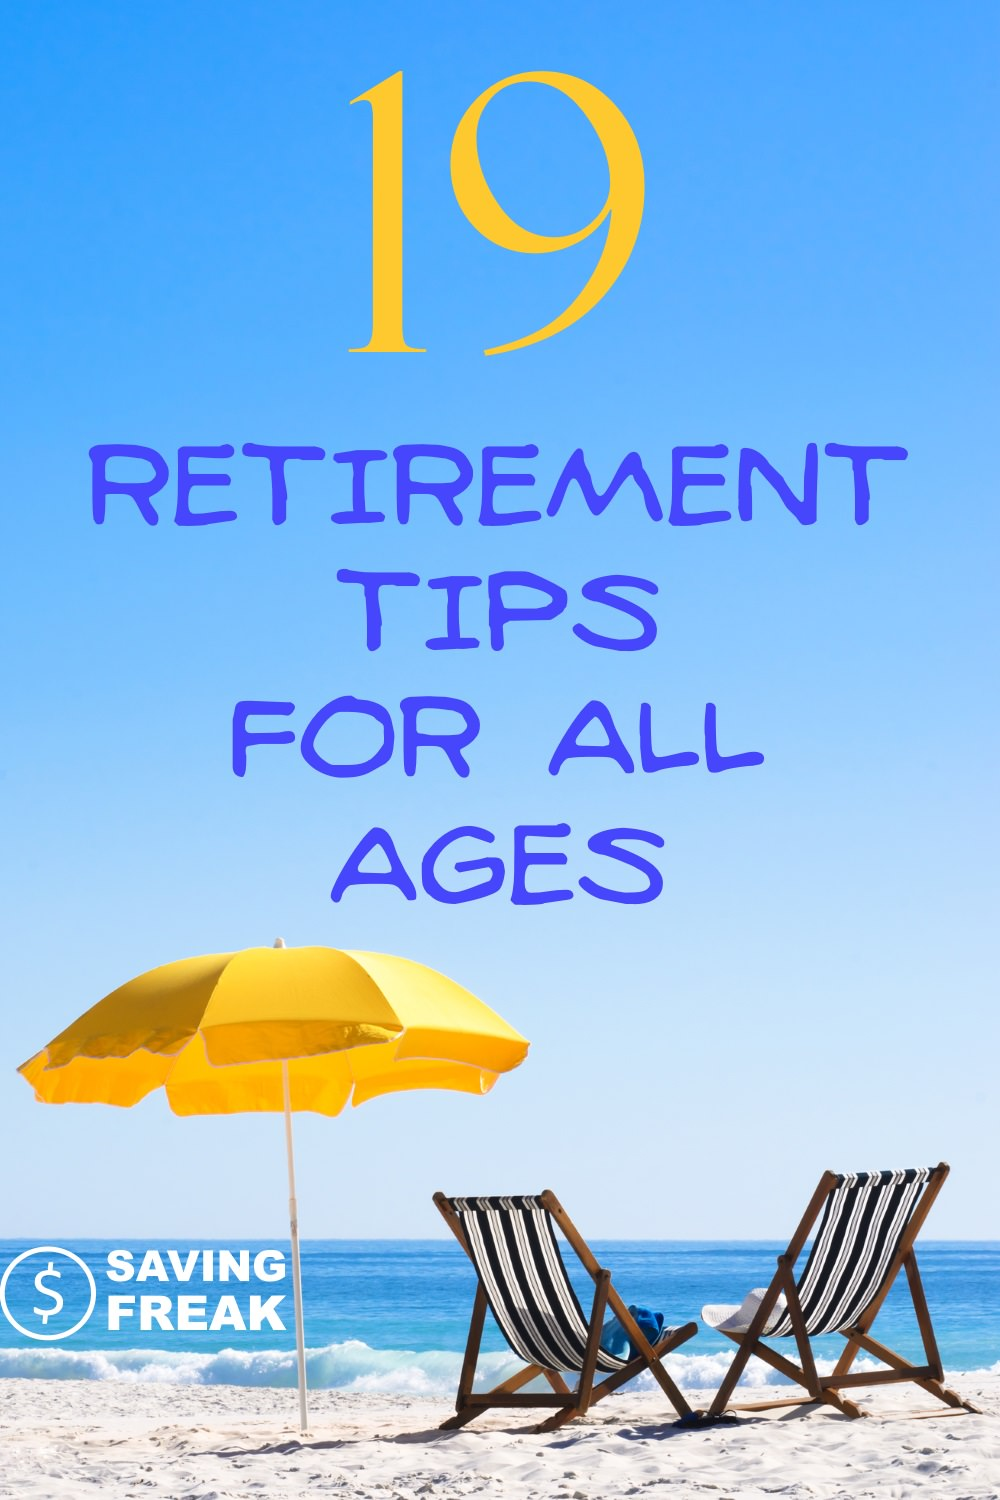 Retirement Tips for All Ages